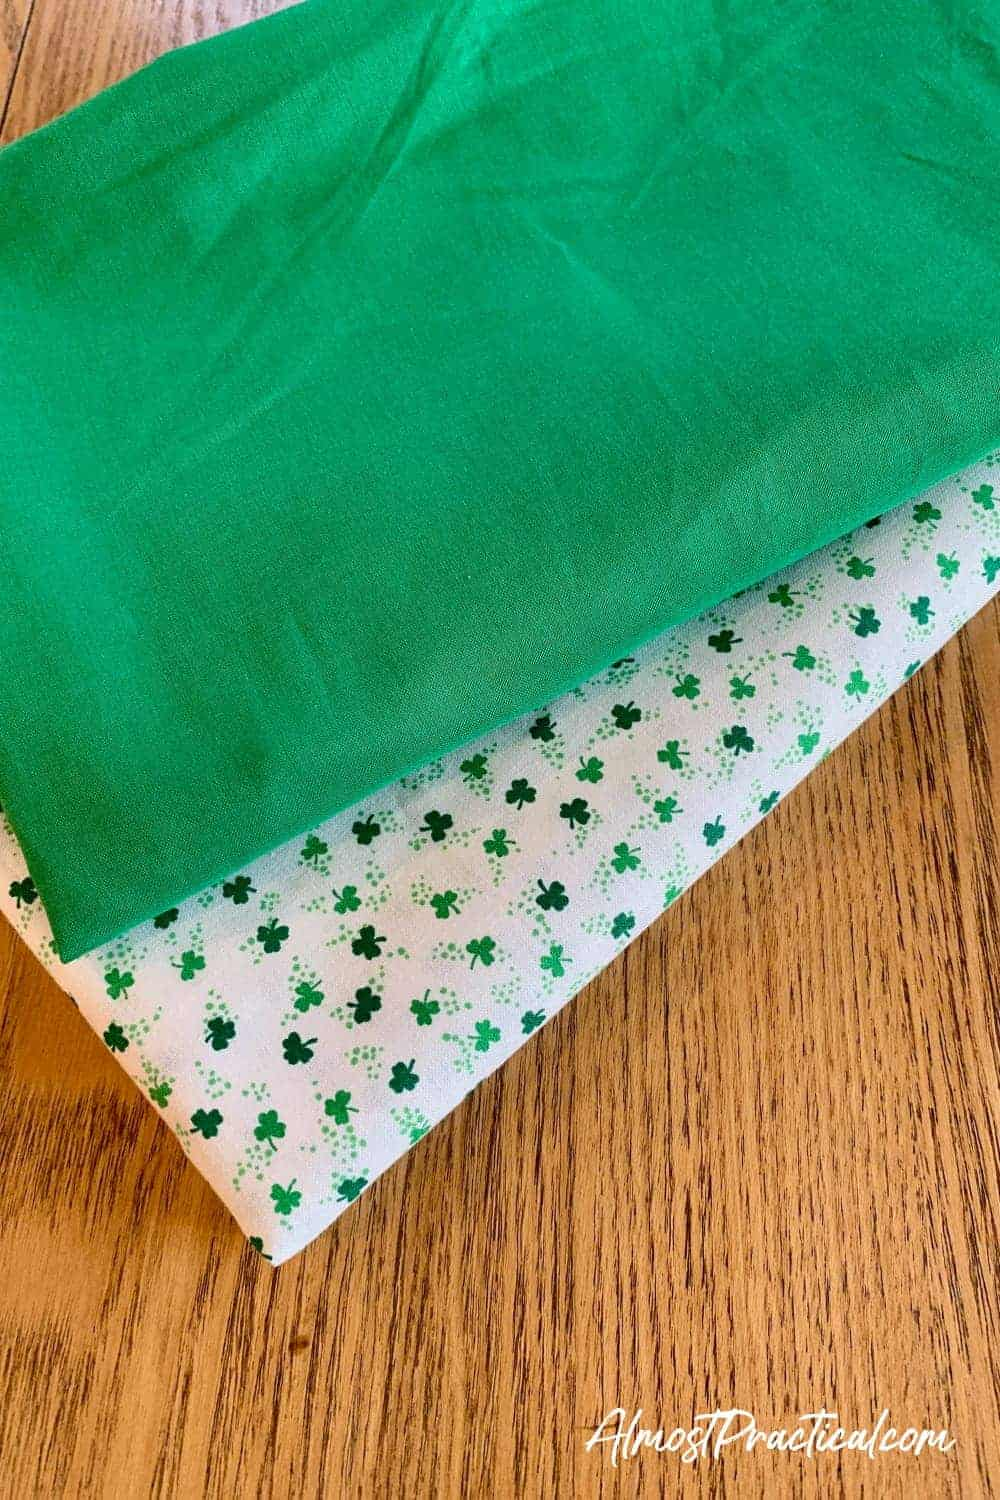 kelly green fabric and white fabric with shamrocks